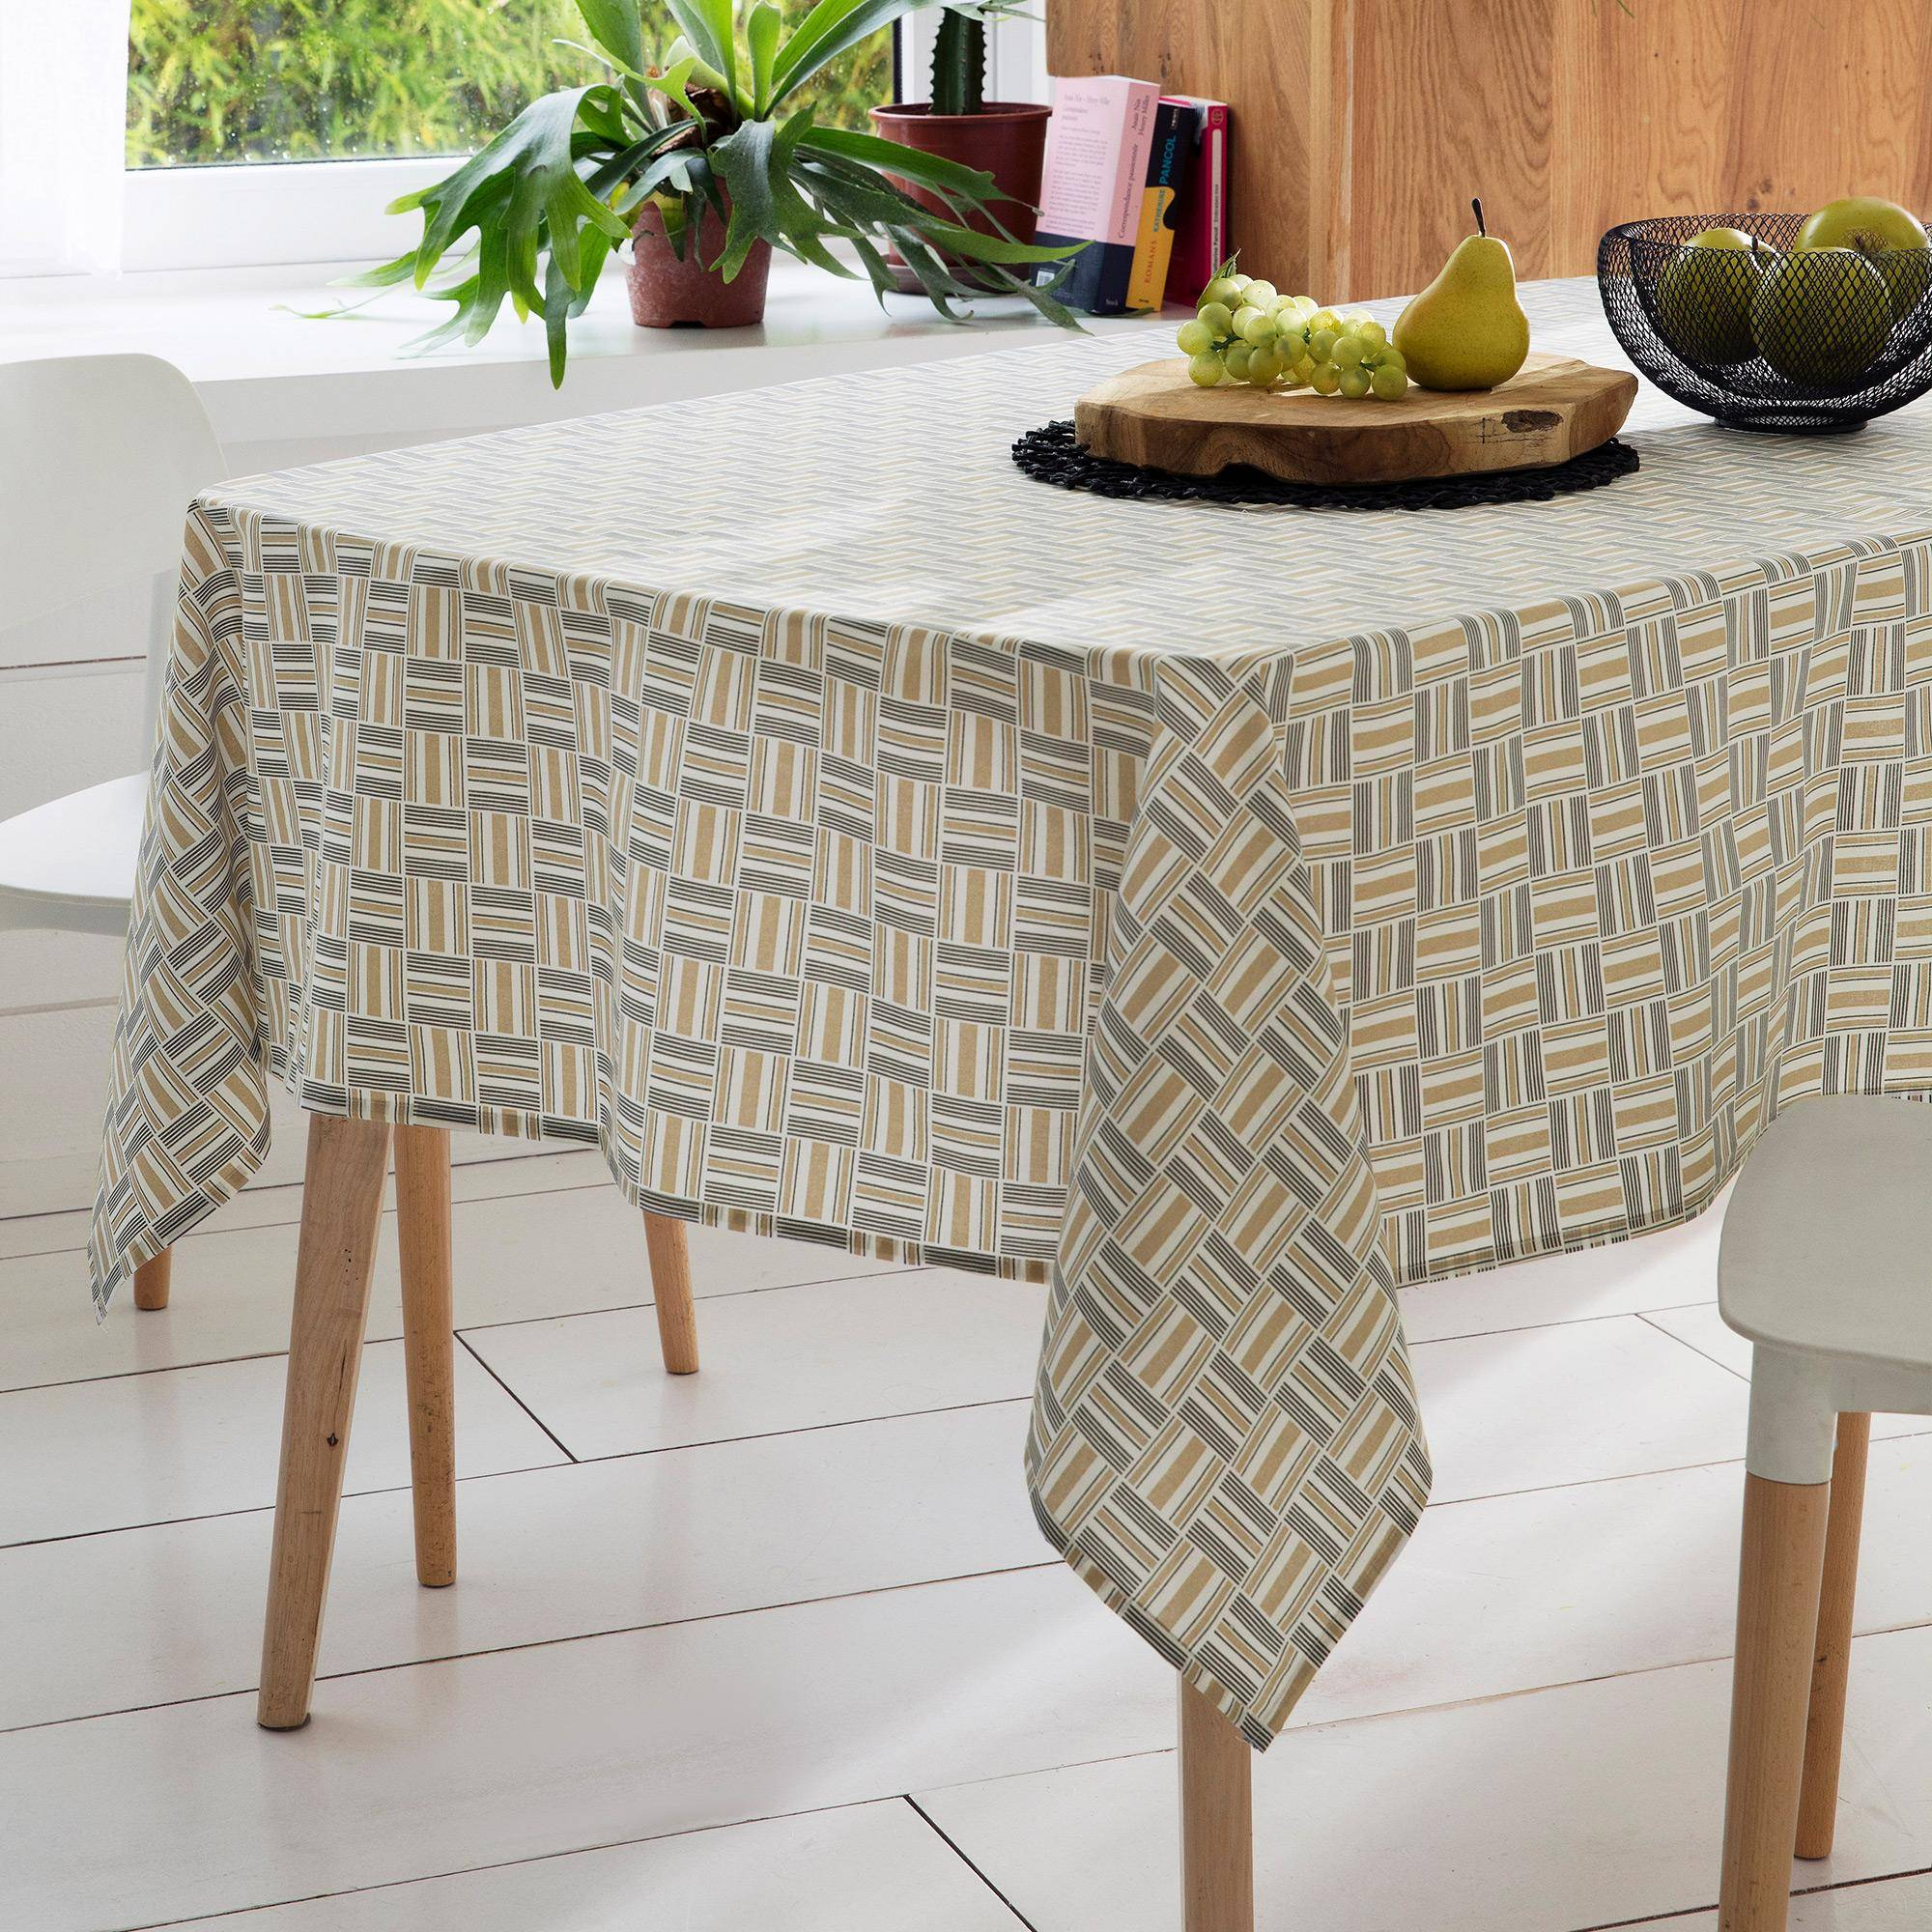 Linnea Nappe carrée 170x170 cm GRAPHIC beige 100% coton + enduction acrylique